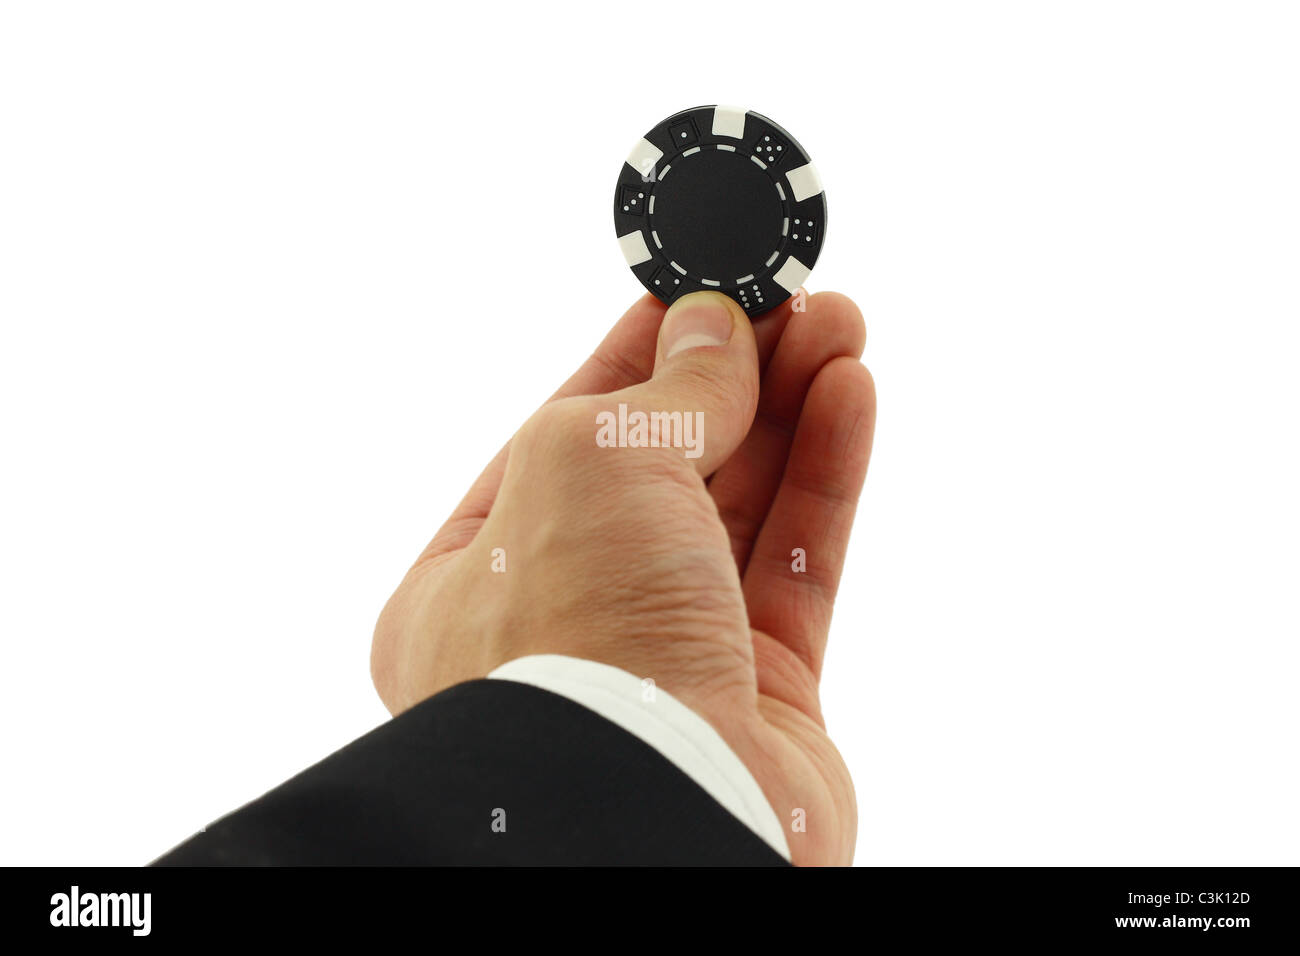 Business man's hand holding a casino chip - Stock Image